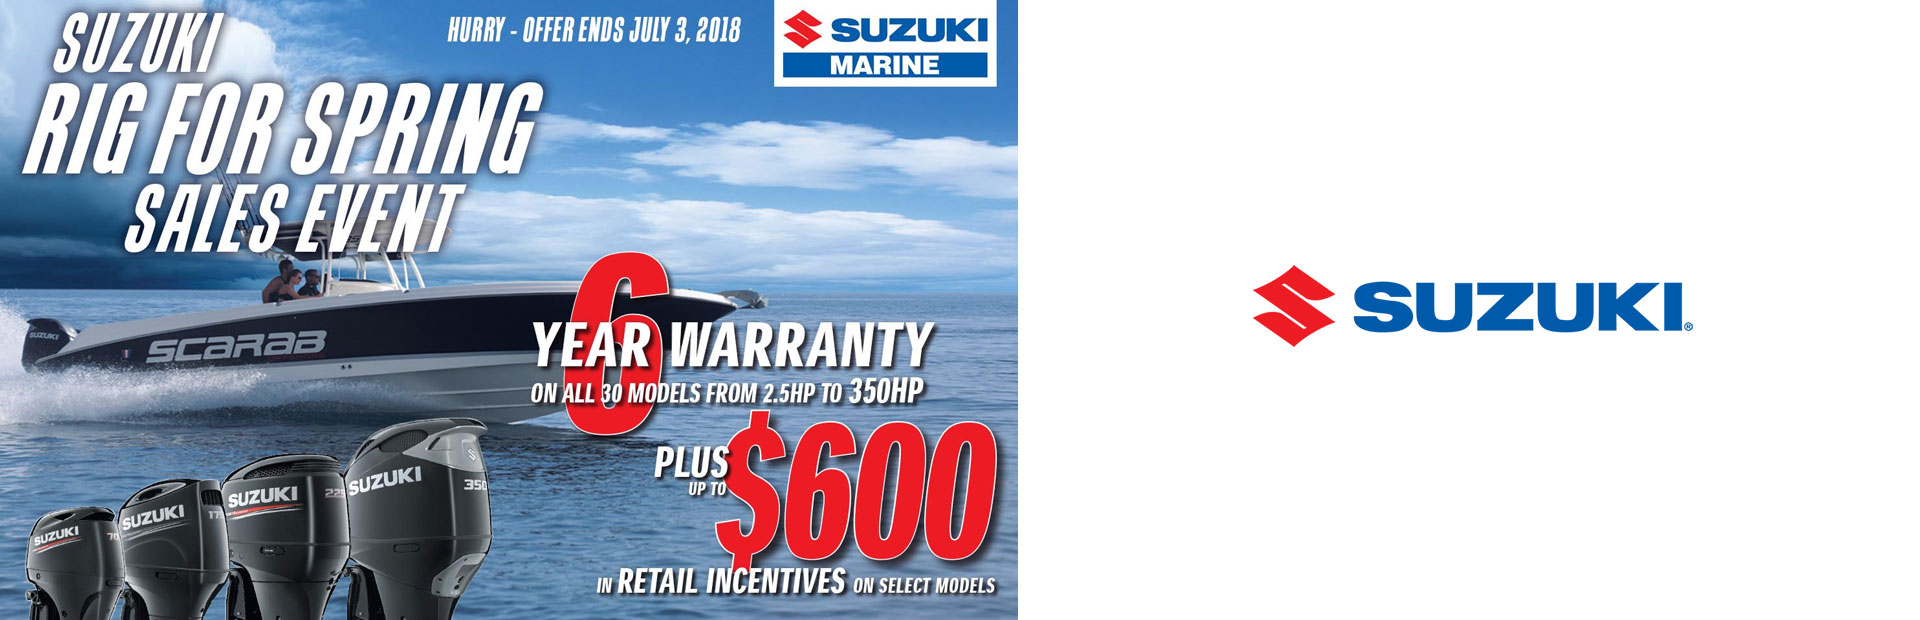 Suzuki: Suzuki Rig for Spring Sales Event